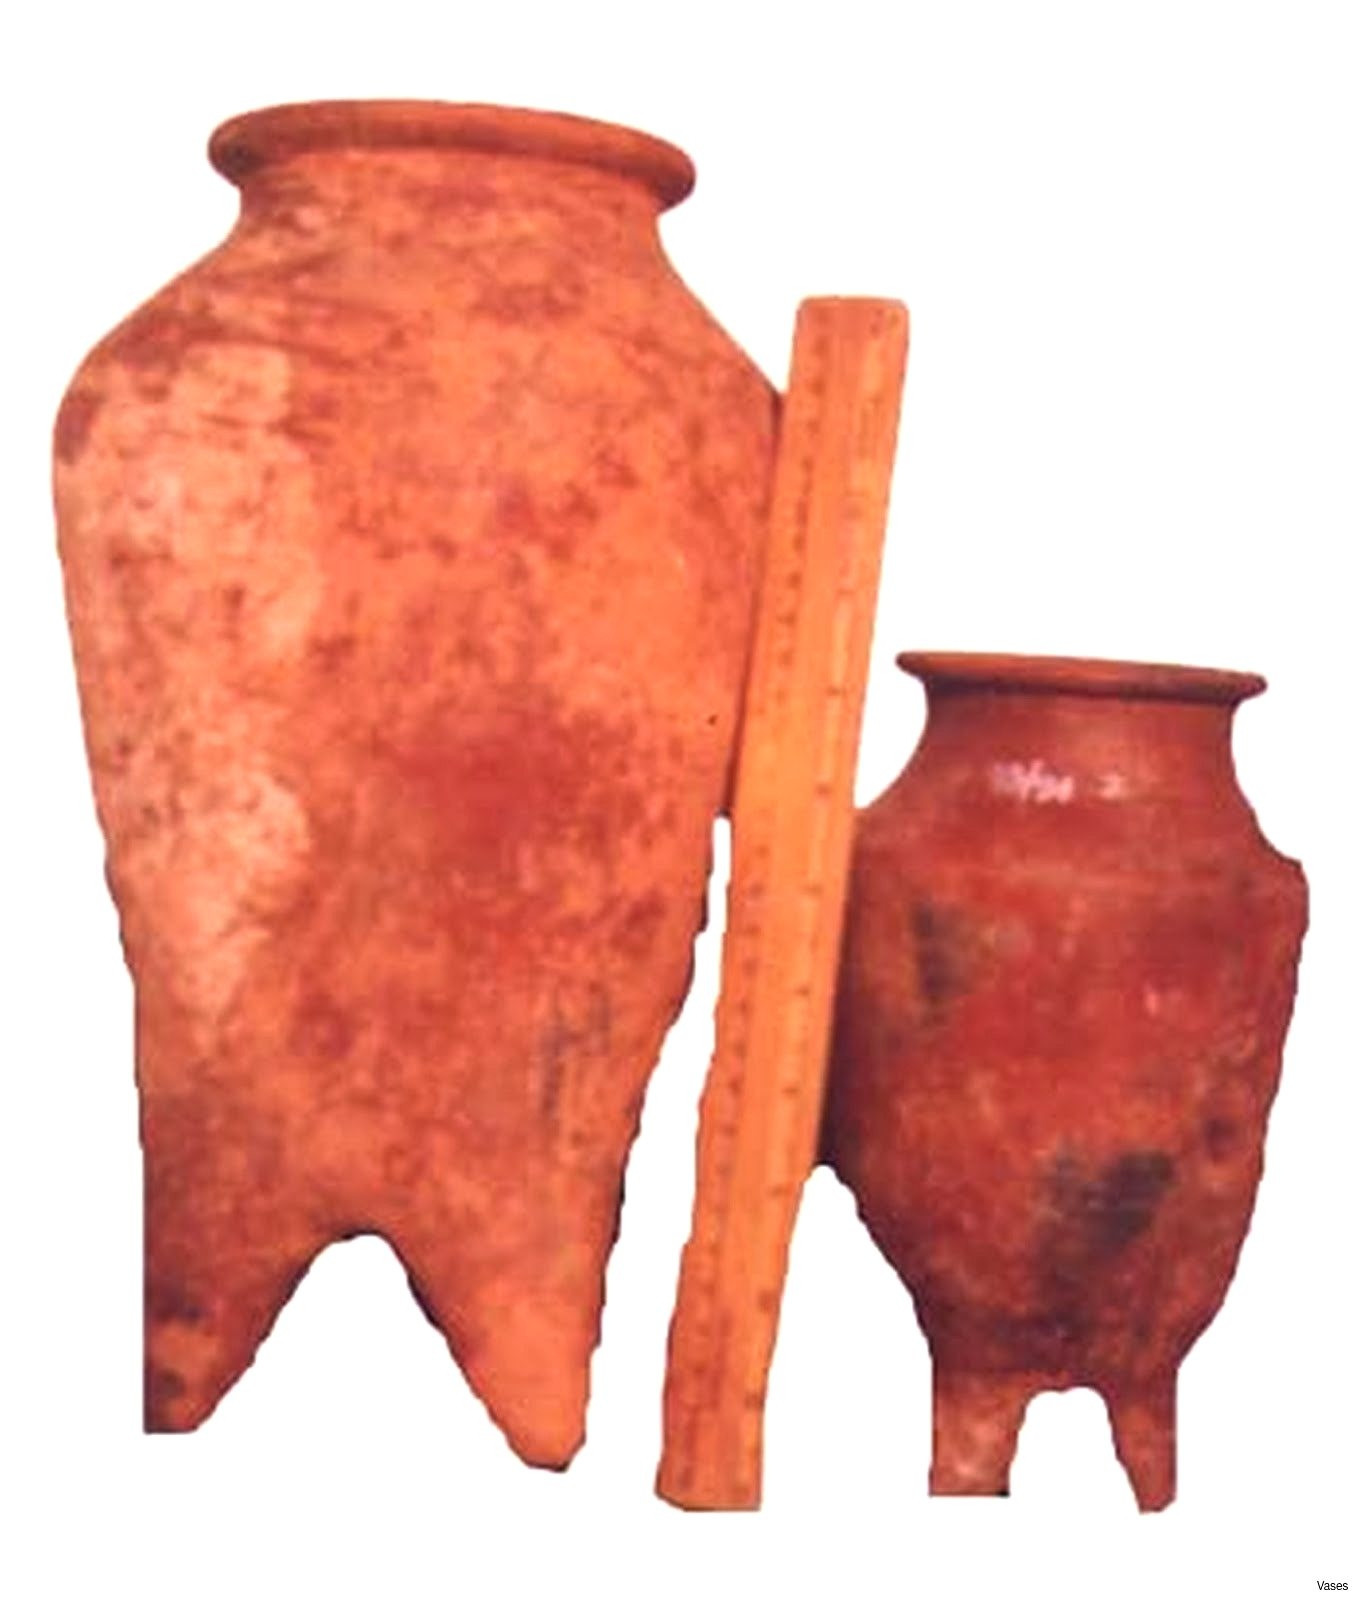 orange pottery vase of 22 elegant flower vase meaning in tamil flower decoration ideas throughout flower vase meaning in tamil new vase meaning in tamil vase and cellar image avorcor